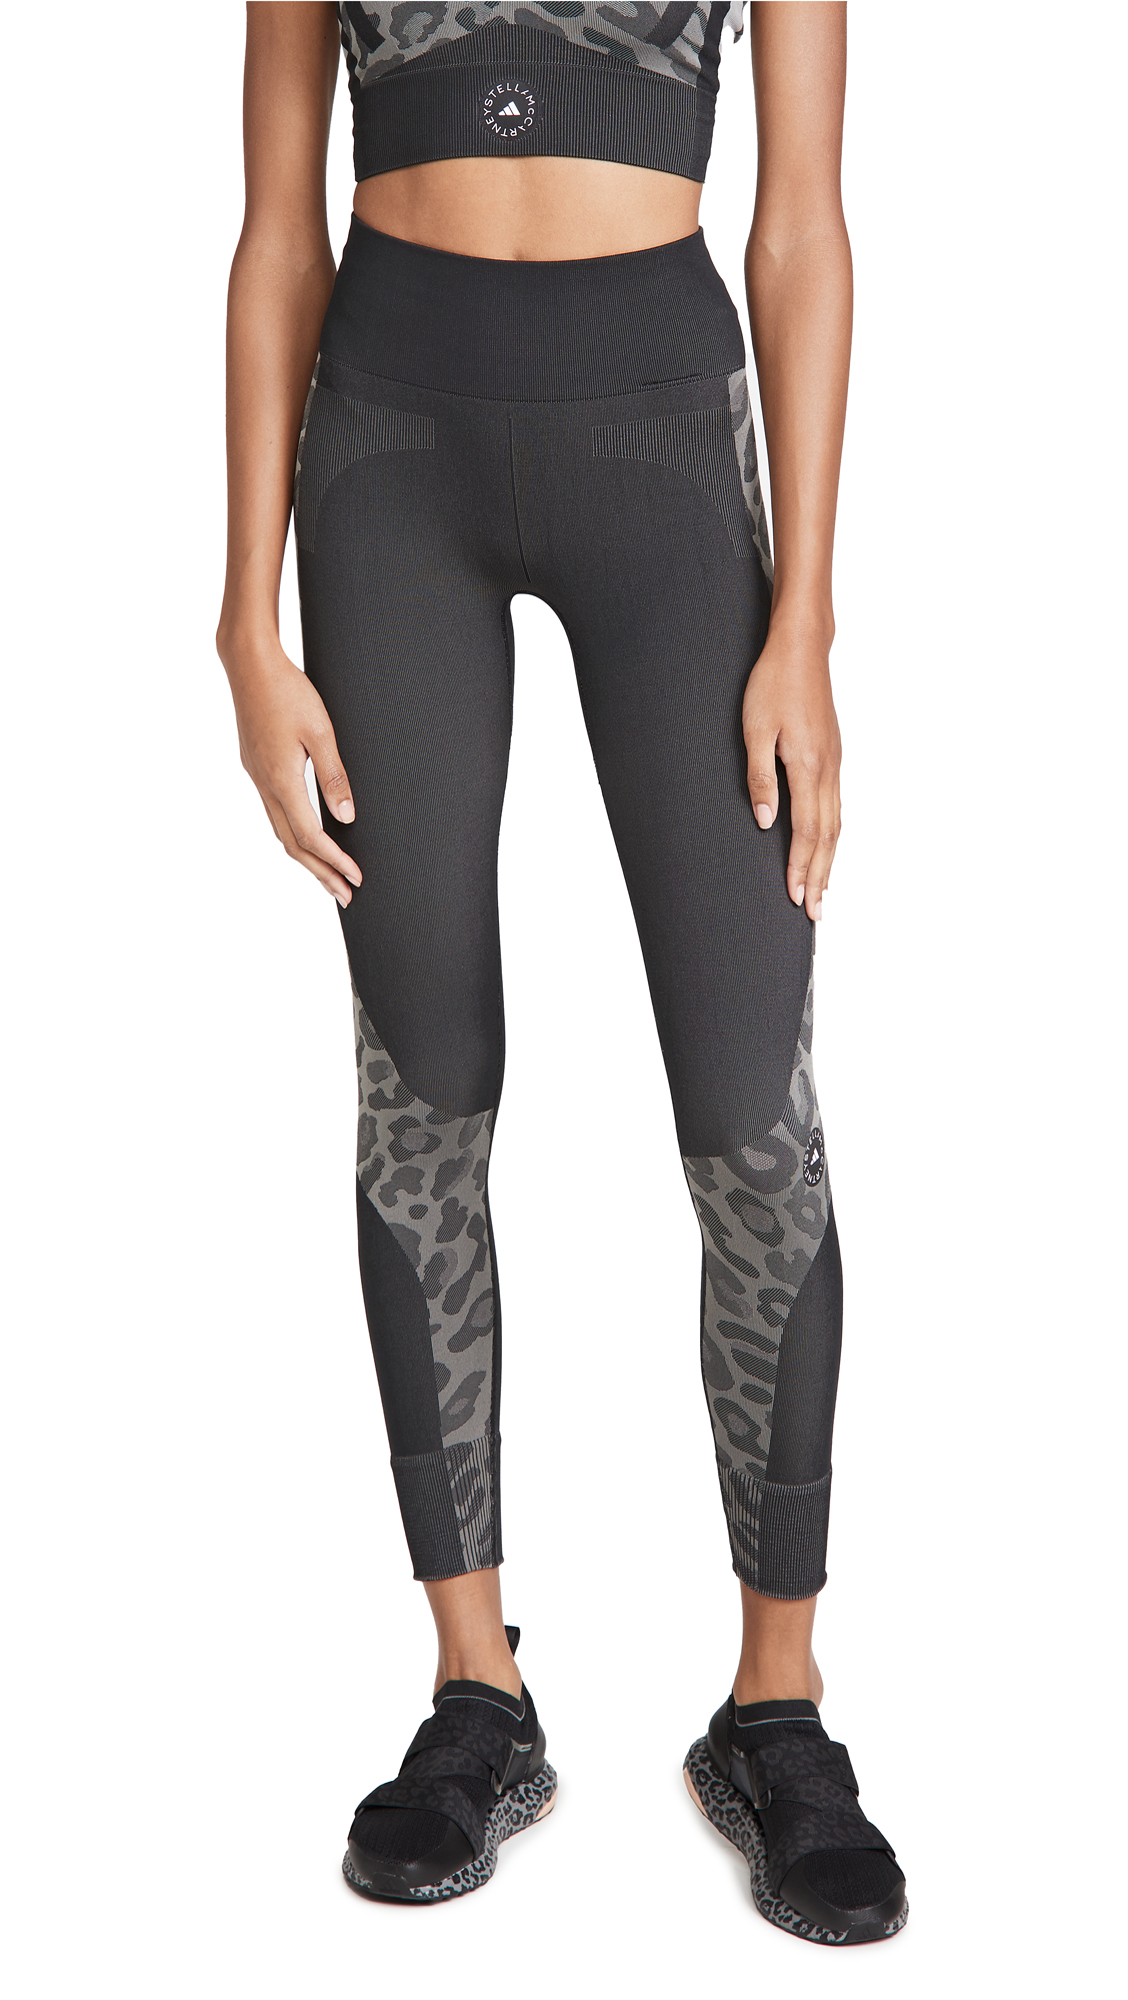 adidas by Stella McCartney Truepur Sl Tights